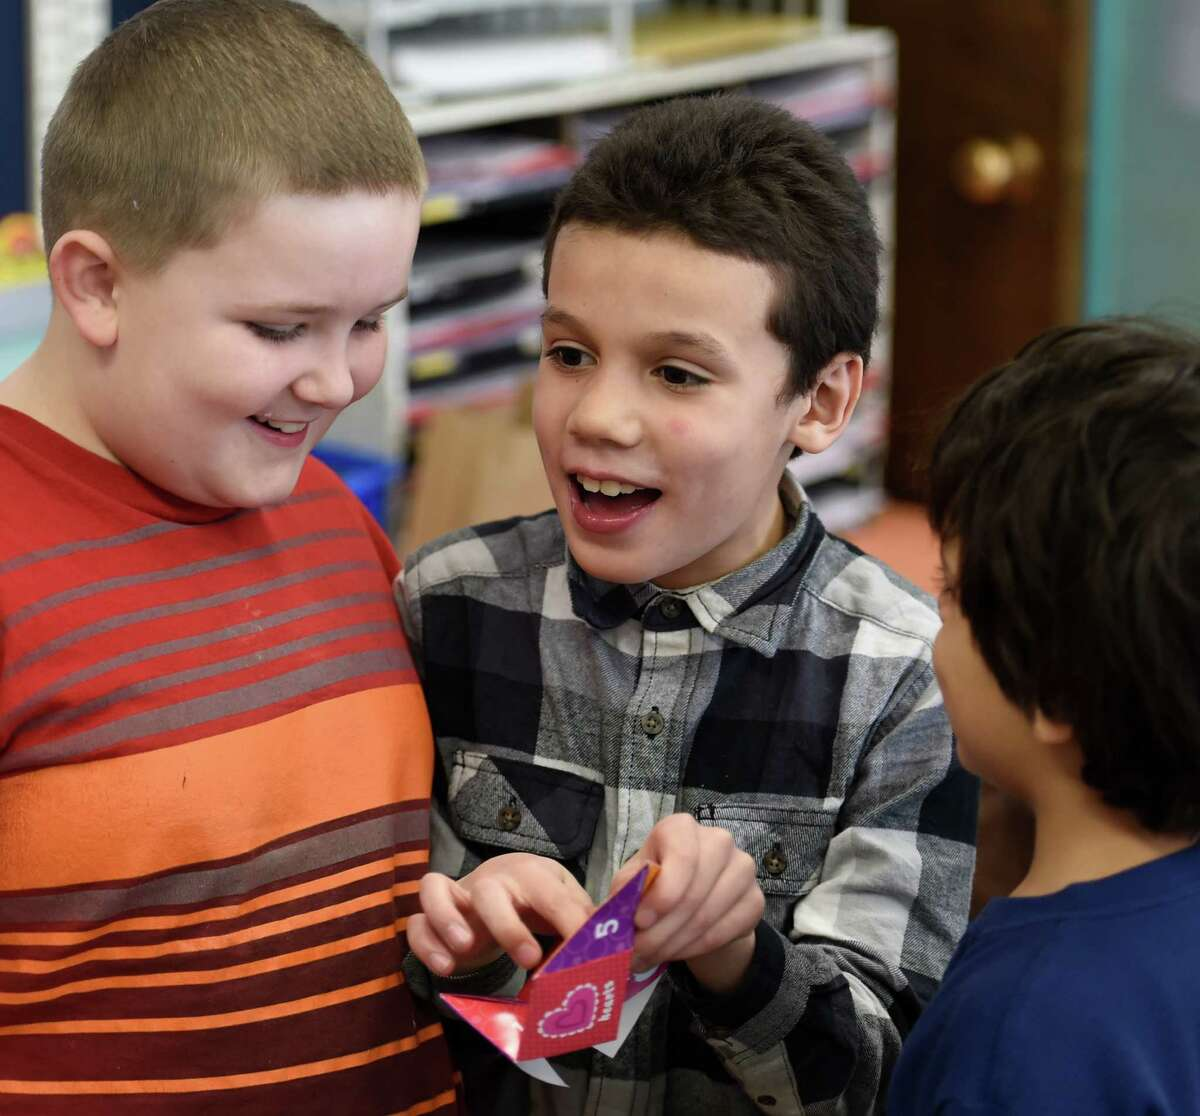 Stephen Torres, center, plays a Valentine's Day game Friday afternoon Feb. 13, 2015 at the Elmer Elementary School in Schenectady, N.Y. Torres is joined by Alex Keary, left and Mohammed Ali, right during the activity. The occasion was Mrs. Jennifer Rodecker's class Valentine's Day celebration. (Skip Dickstein/Times Union)